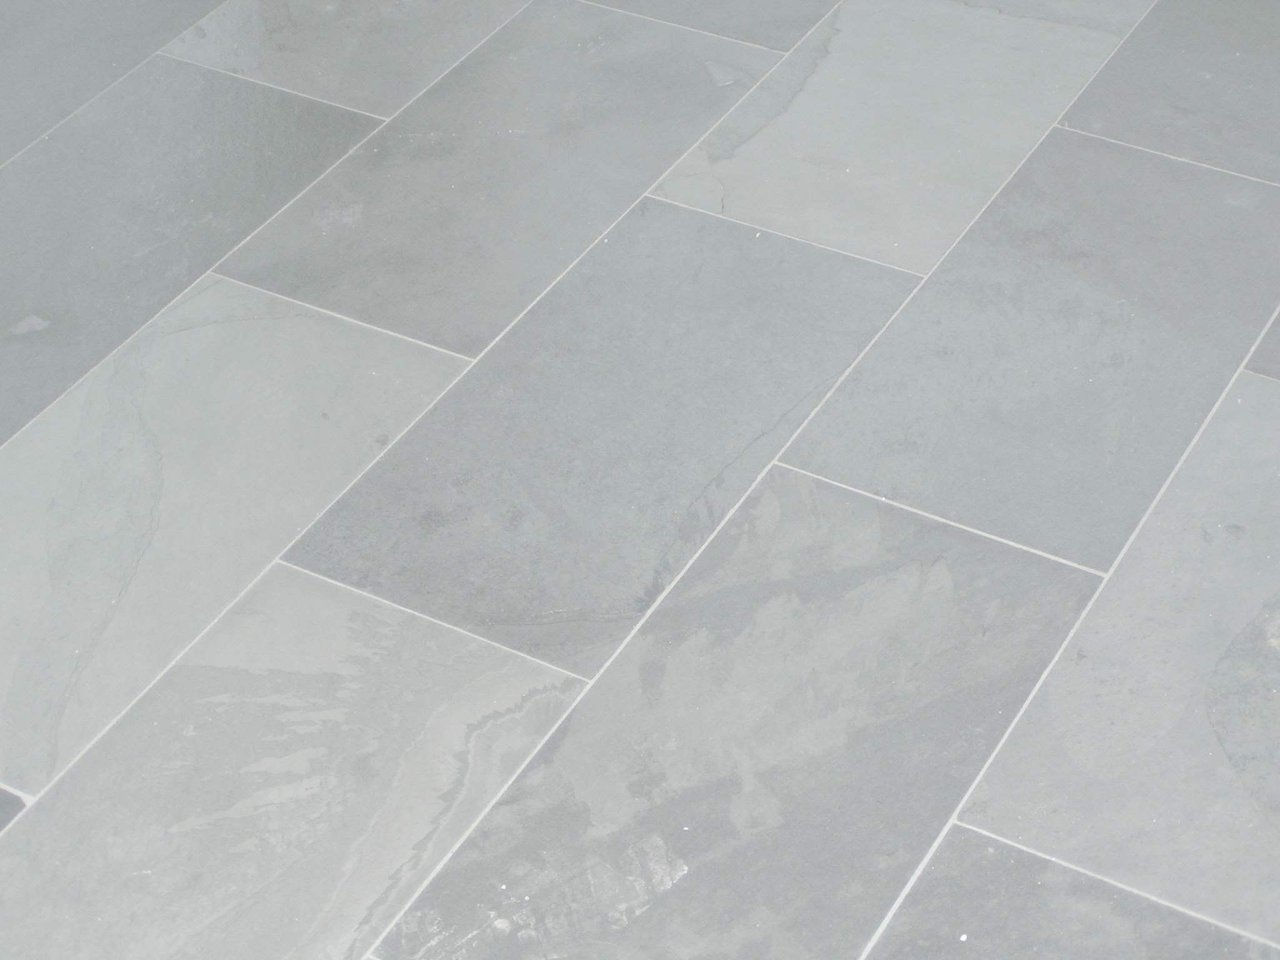 Gray slate tile photo 12x24 slate tile flooring tile design ideas 100 floor slate tiles marble tile bathroom design ideas sla dailygadgetfo Choice Image